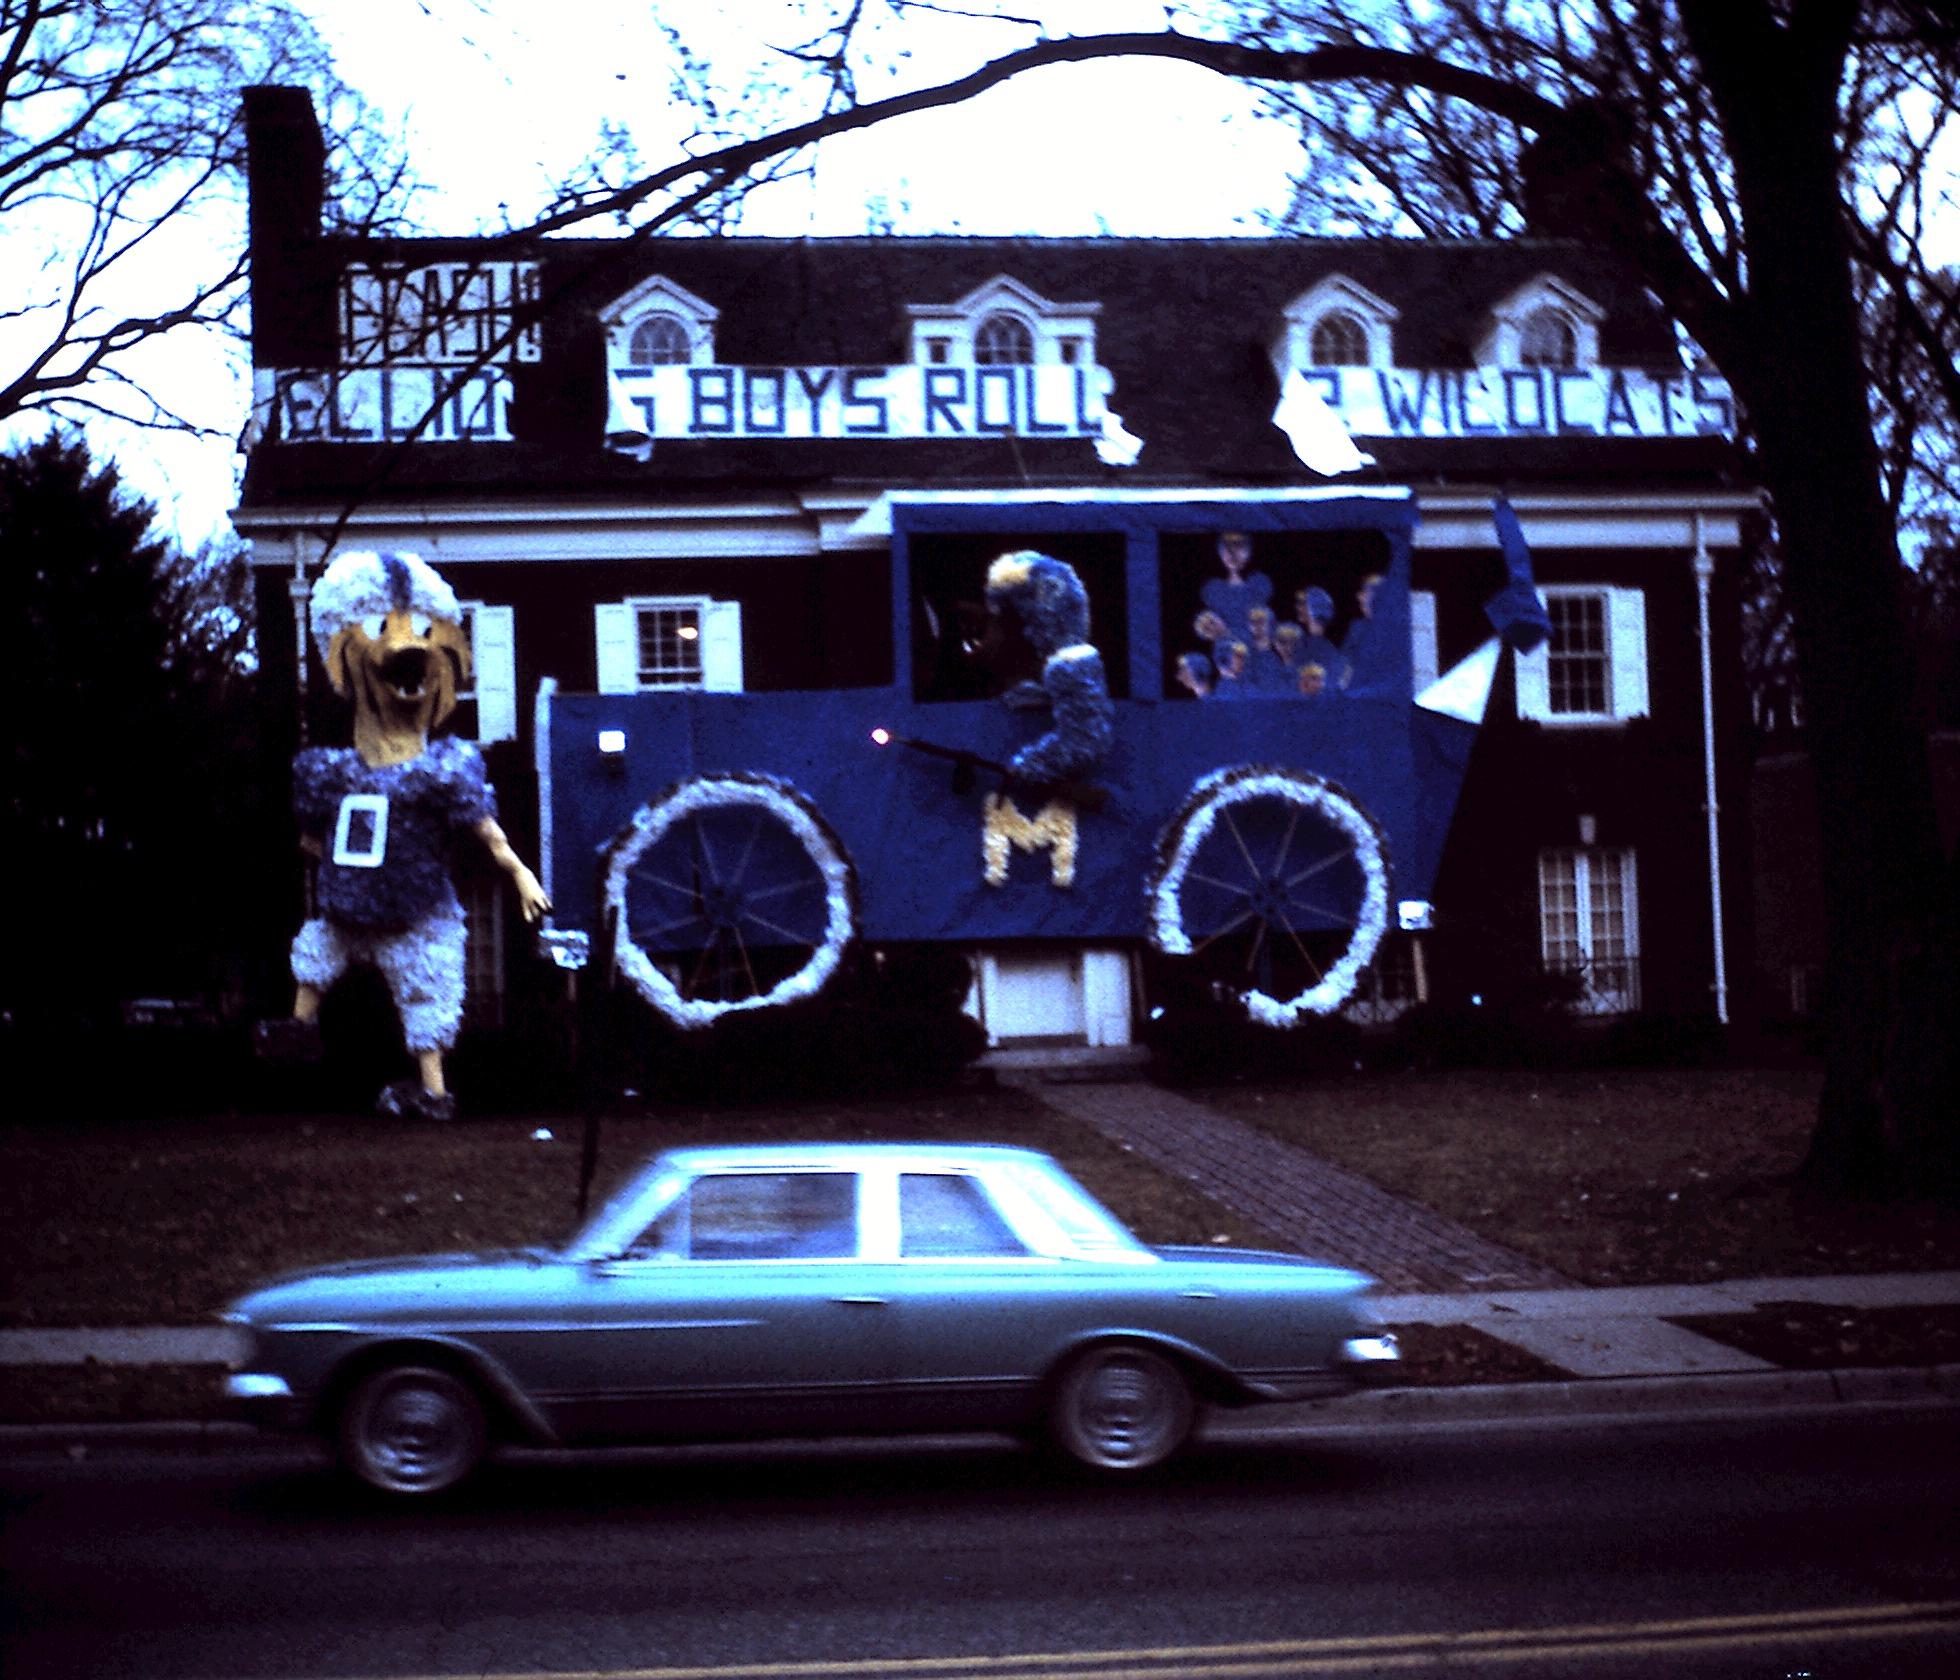 The chapter house decorated for Homecoming, 1963